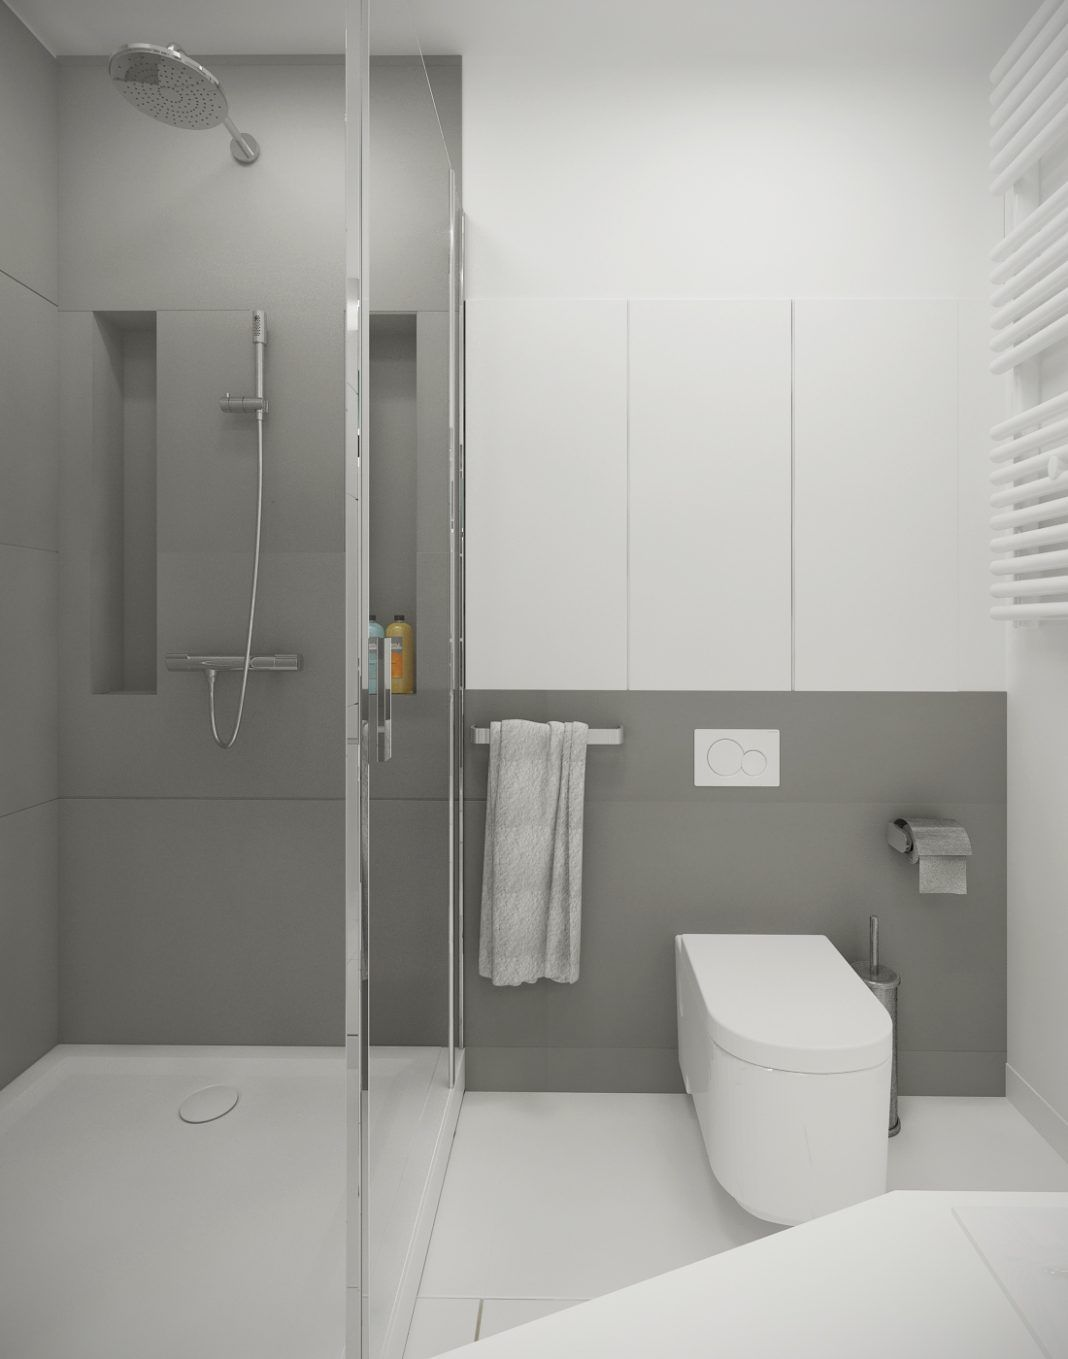 A Suitable Simple Small Bathroom Designs Looks So Perfect And Spacious With A Smart Decor Ideas In It Gray And White Bathroom Bathroom Design Small Simple Small Bathroom Designs